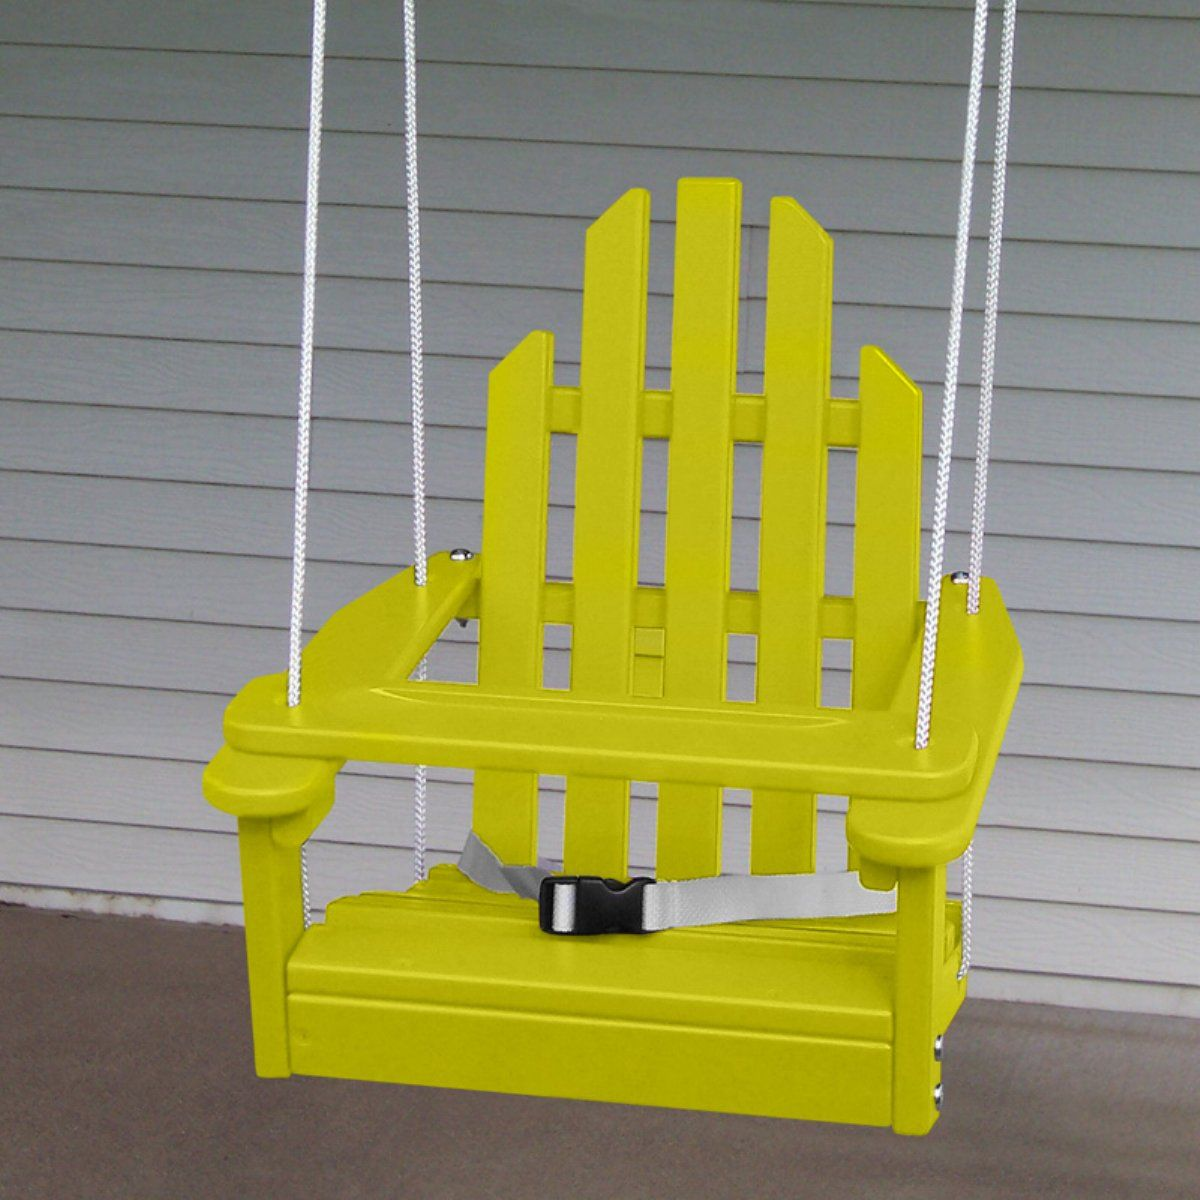 Little ones will love safely swinging on the porch in this fun